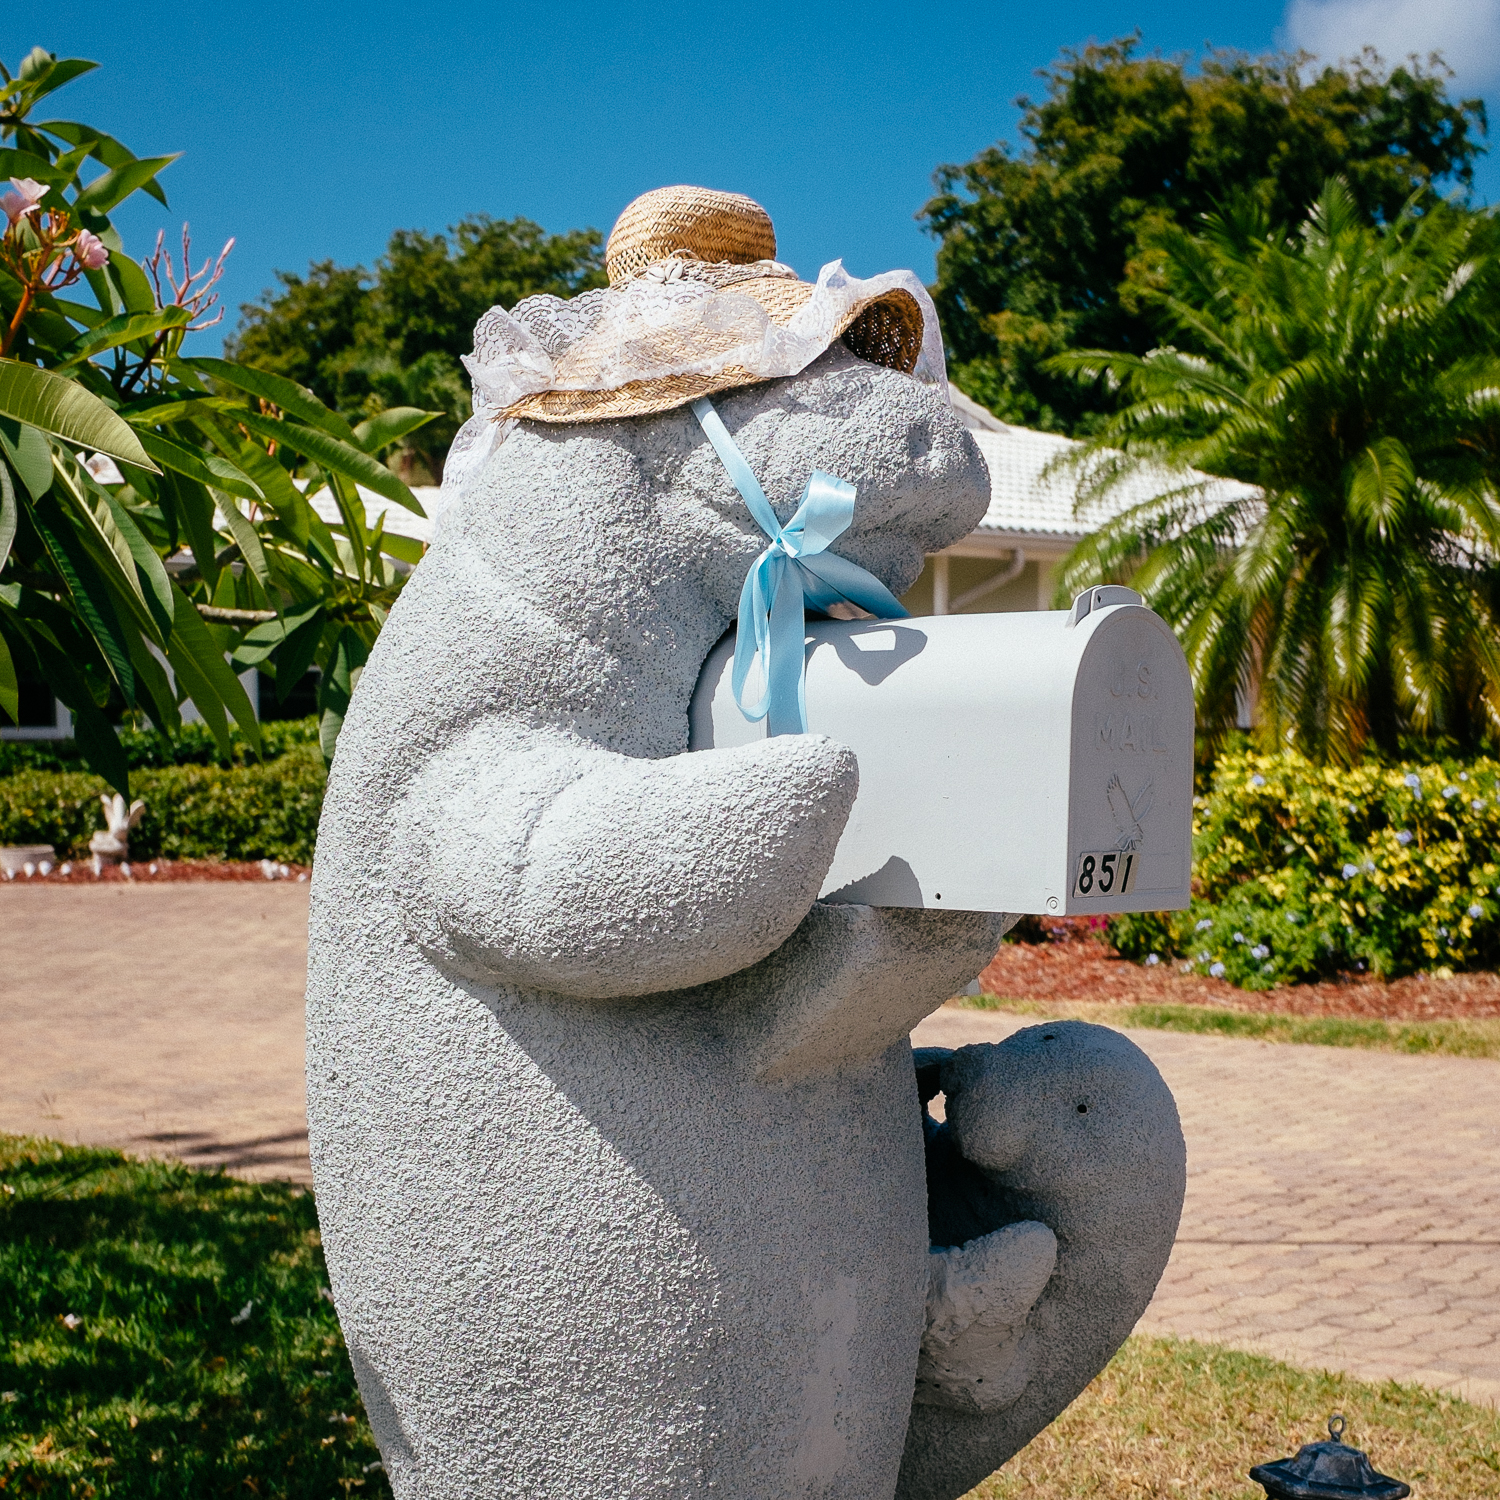 Marco Island, where they dress their concrete manatees, too